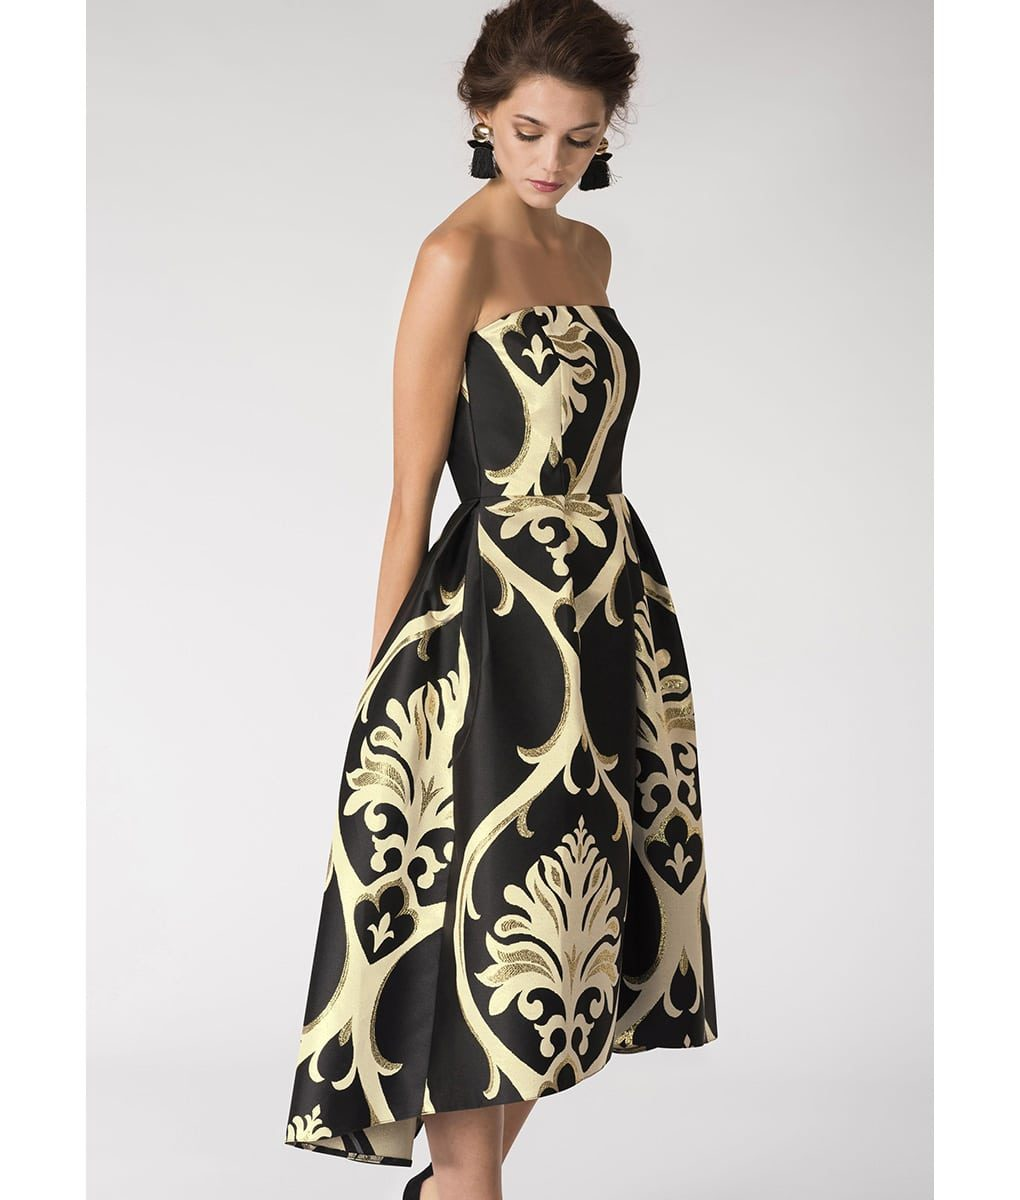 Alila-Strapless-brocade-black-and-gold-evening-dress-Closet-London